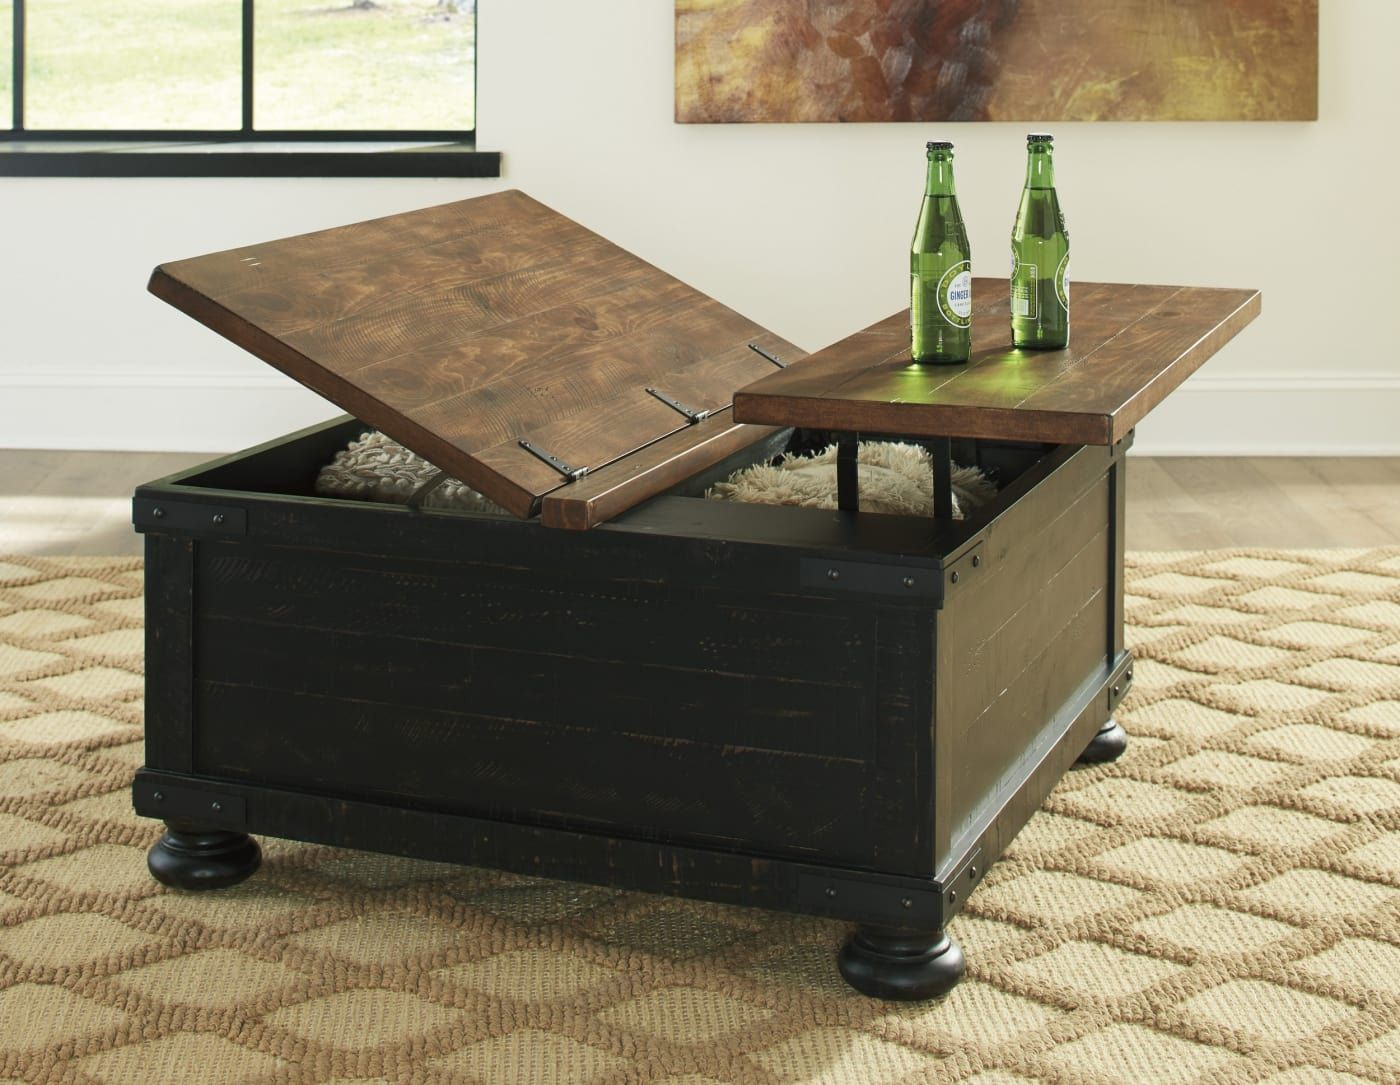 Signature Design By Ashley Valebeck Black Brown Square Lift Top Cocktail Table T468 00 Goedekers Com Coffee Table Lift Top Coffee Table Coffee Table Square [ 1085 x 1400 Pixel ]